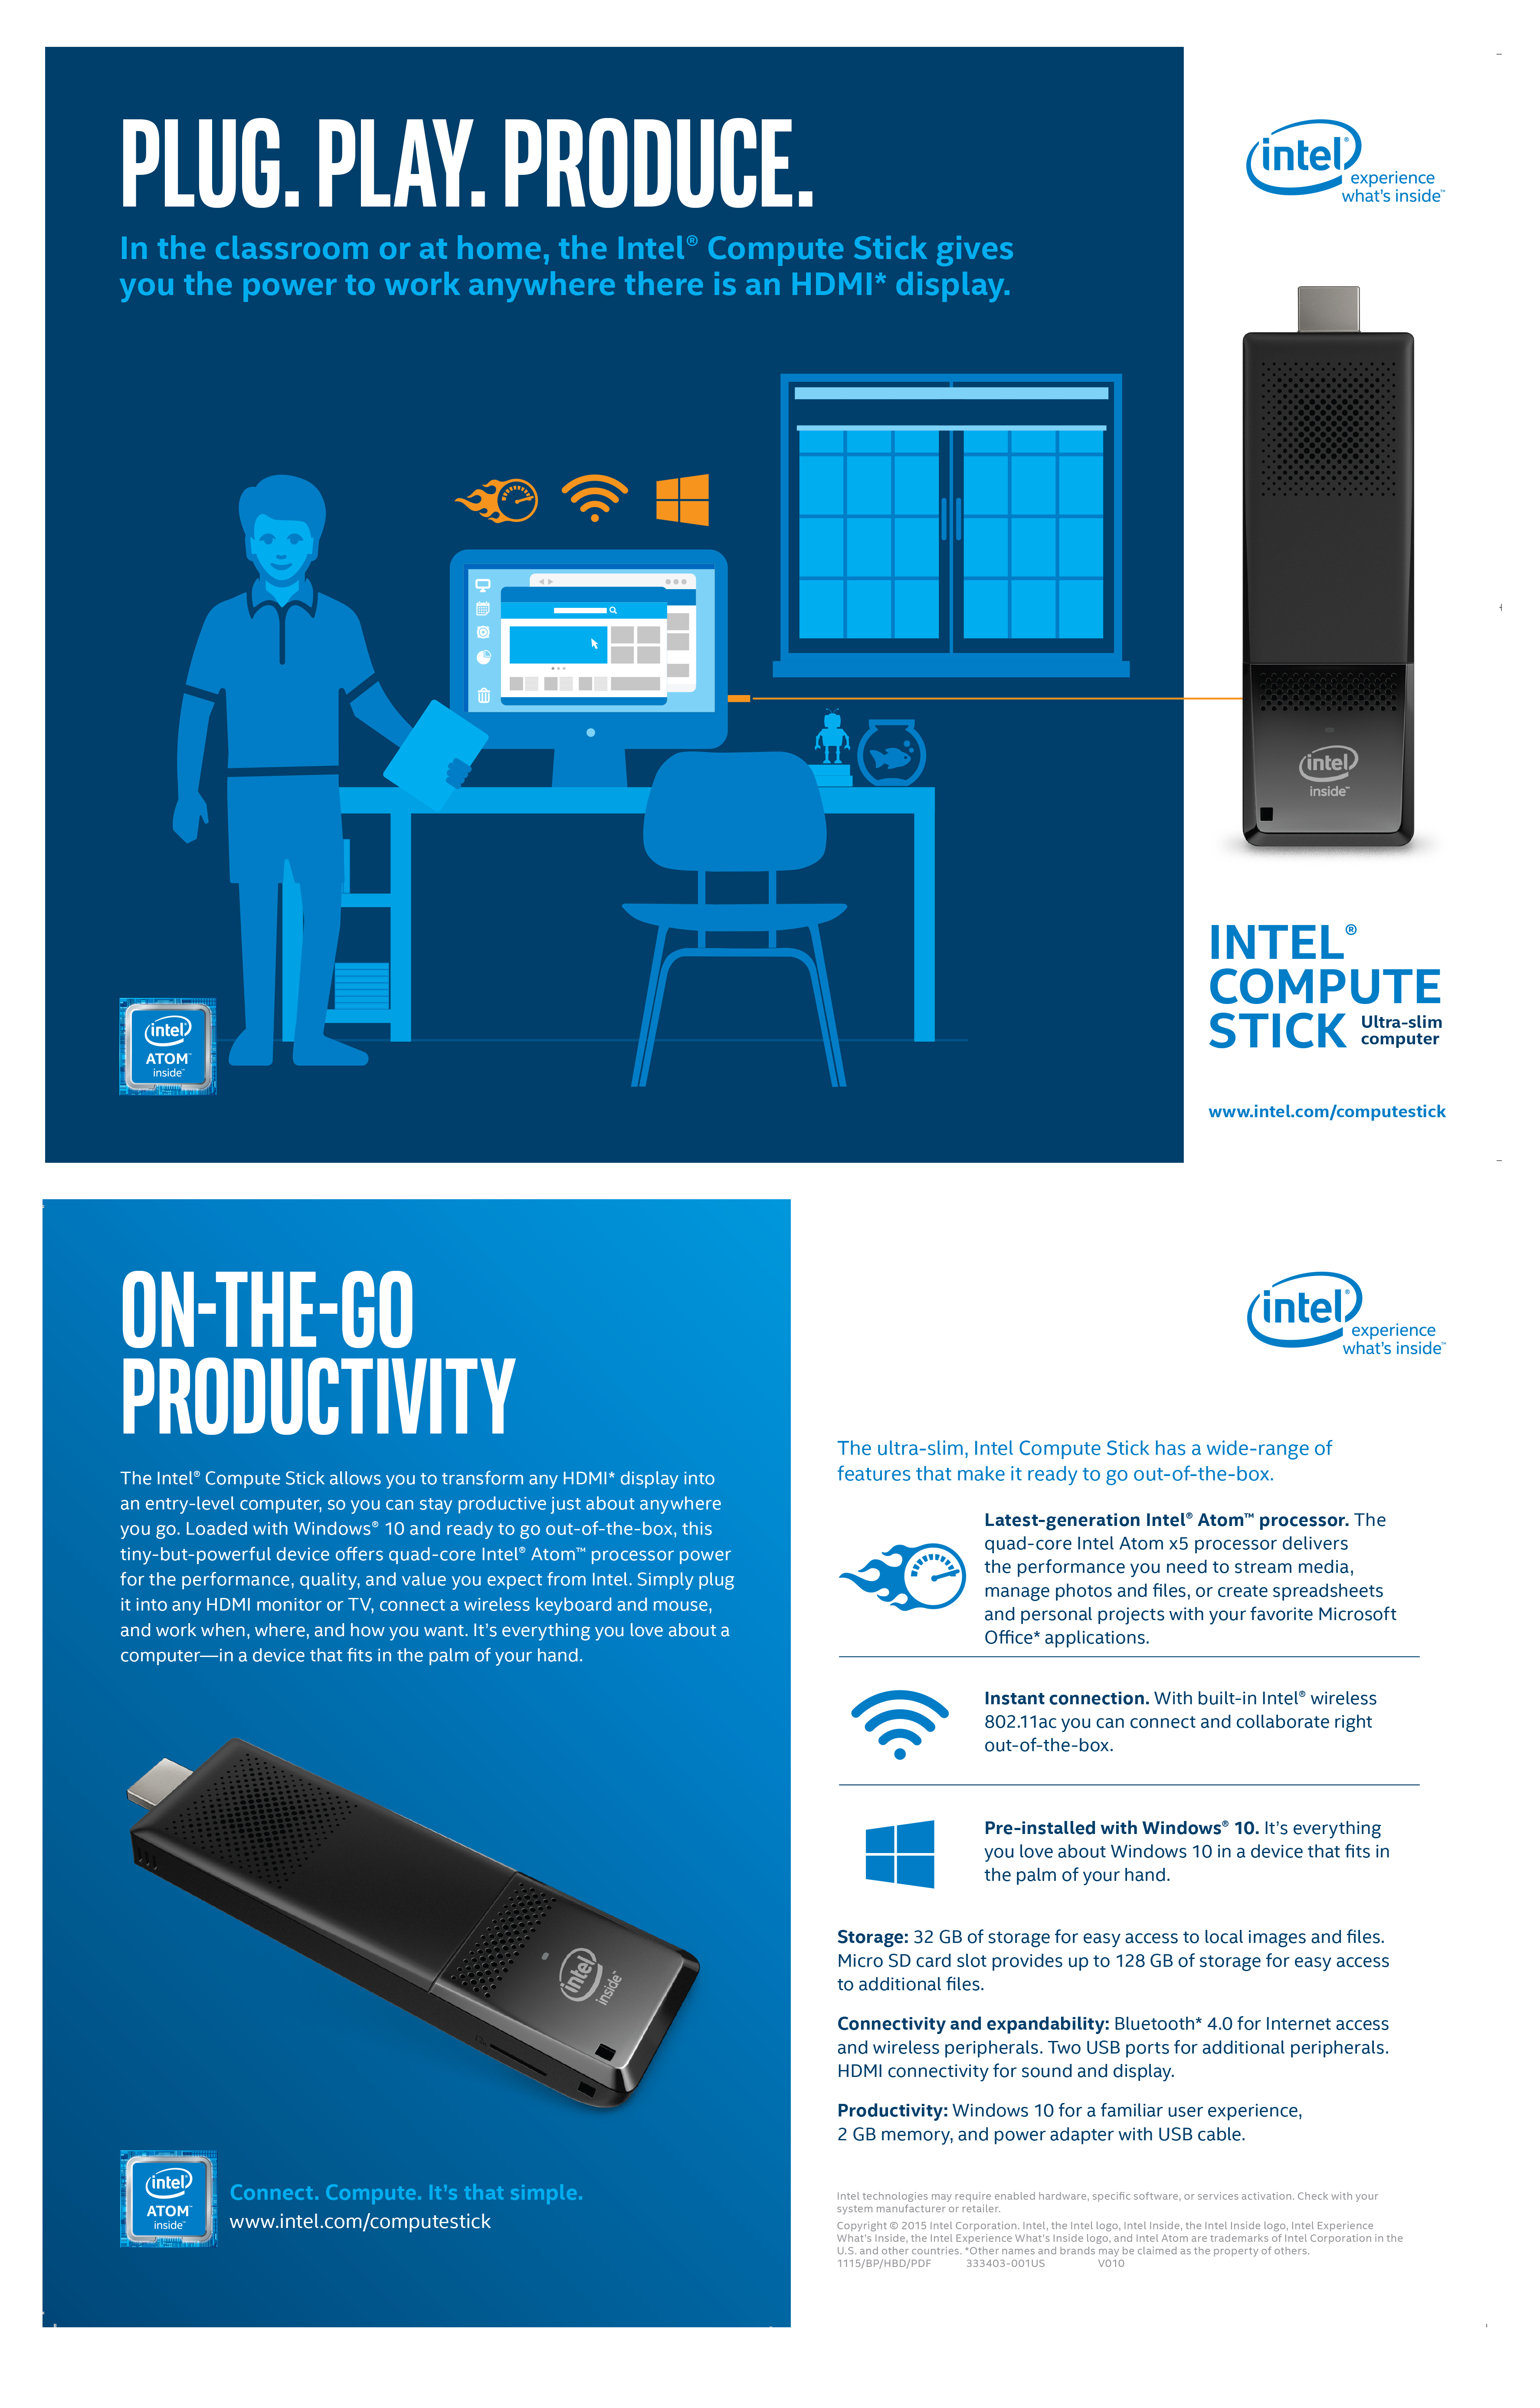 plug play and produce with intel compute stick productivity